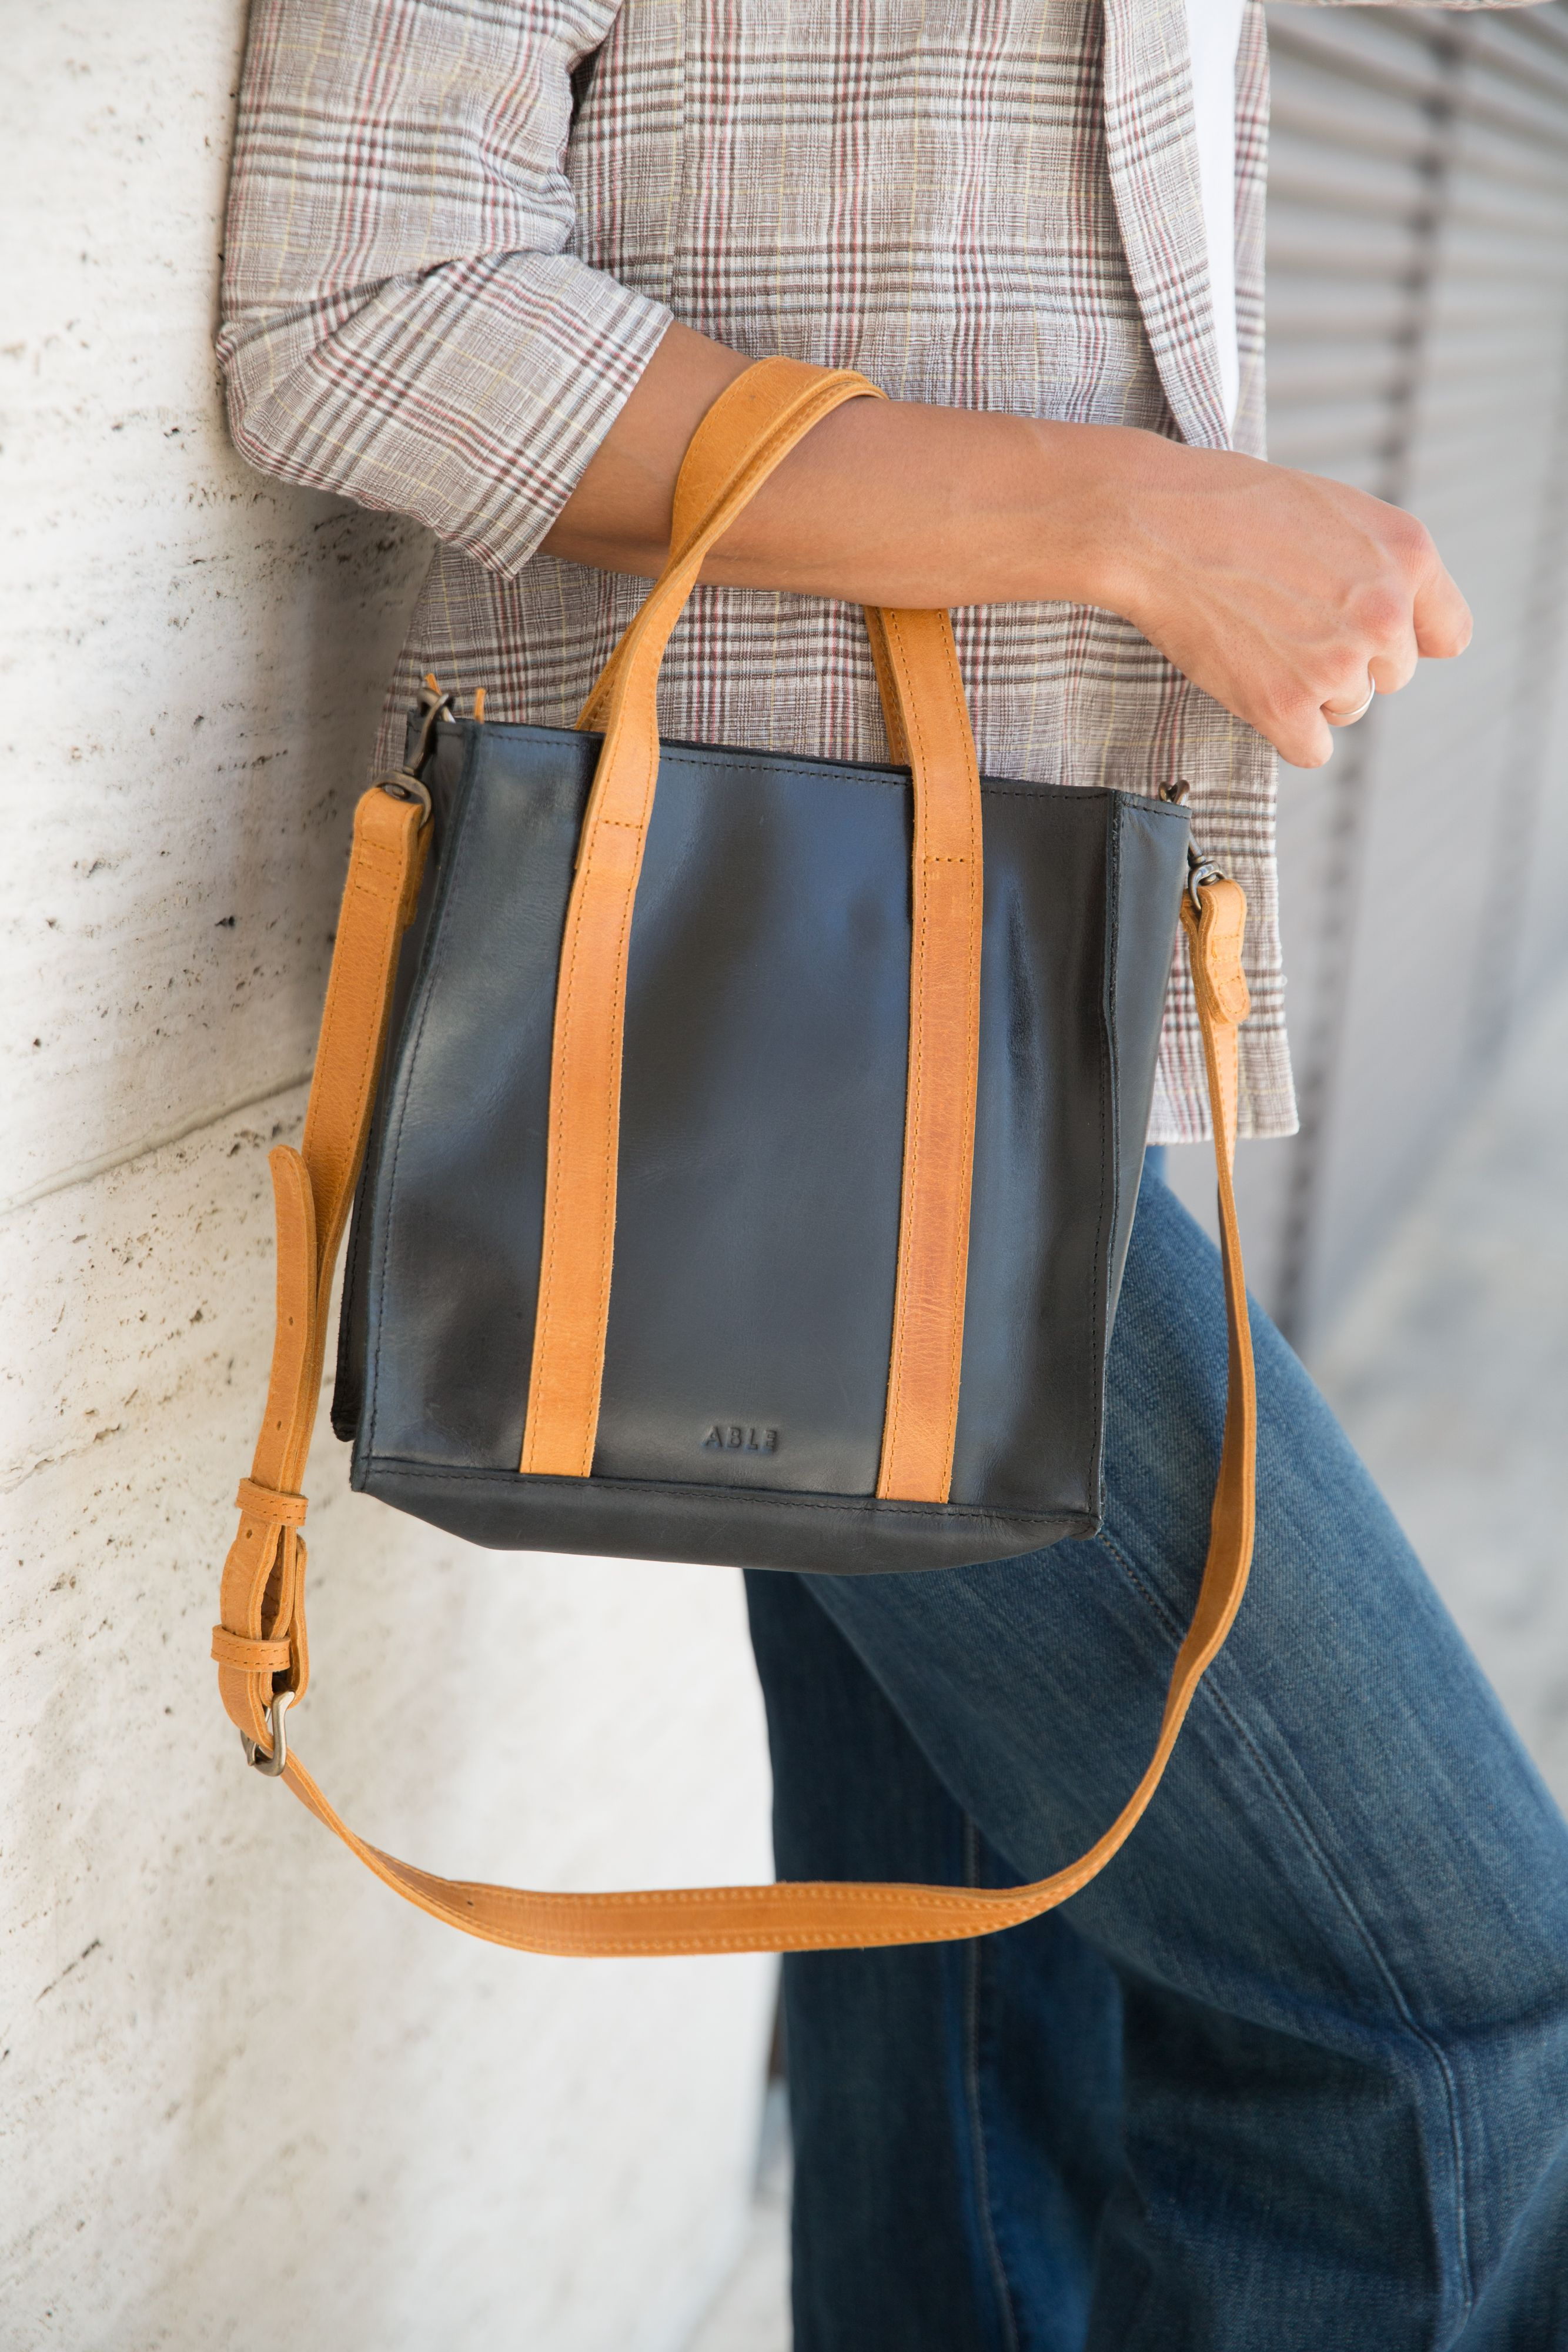 73e6898f9edd Easily wear The Elsabet Top Zip Crossbody as a handbag or attach a strap  for even more functionality. We also love that it features a top-zip  closure to ...